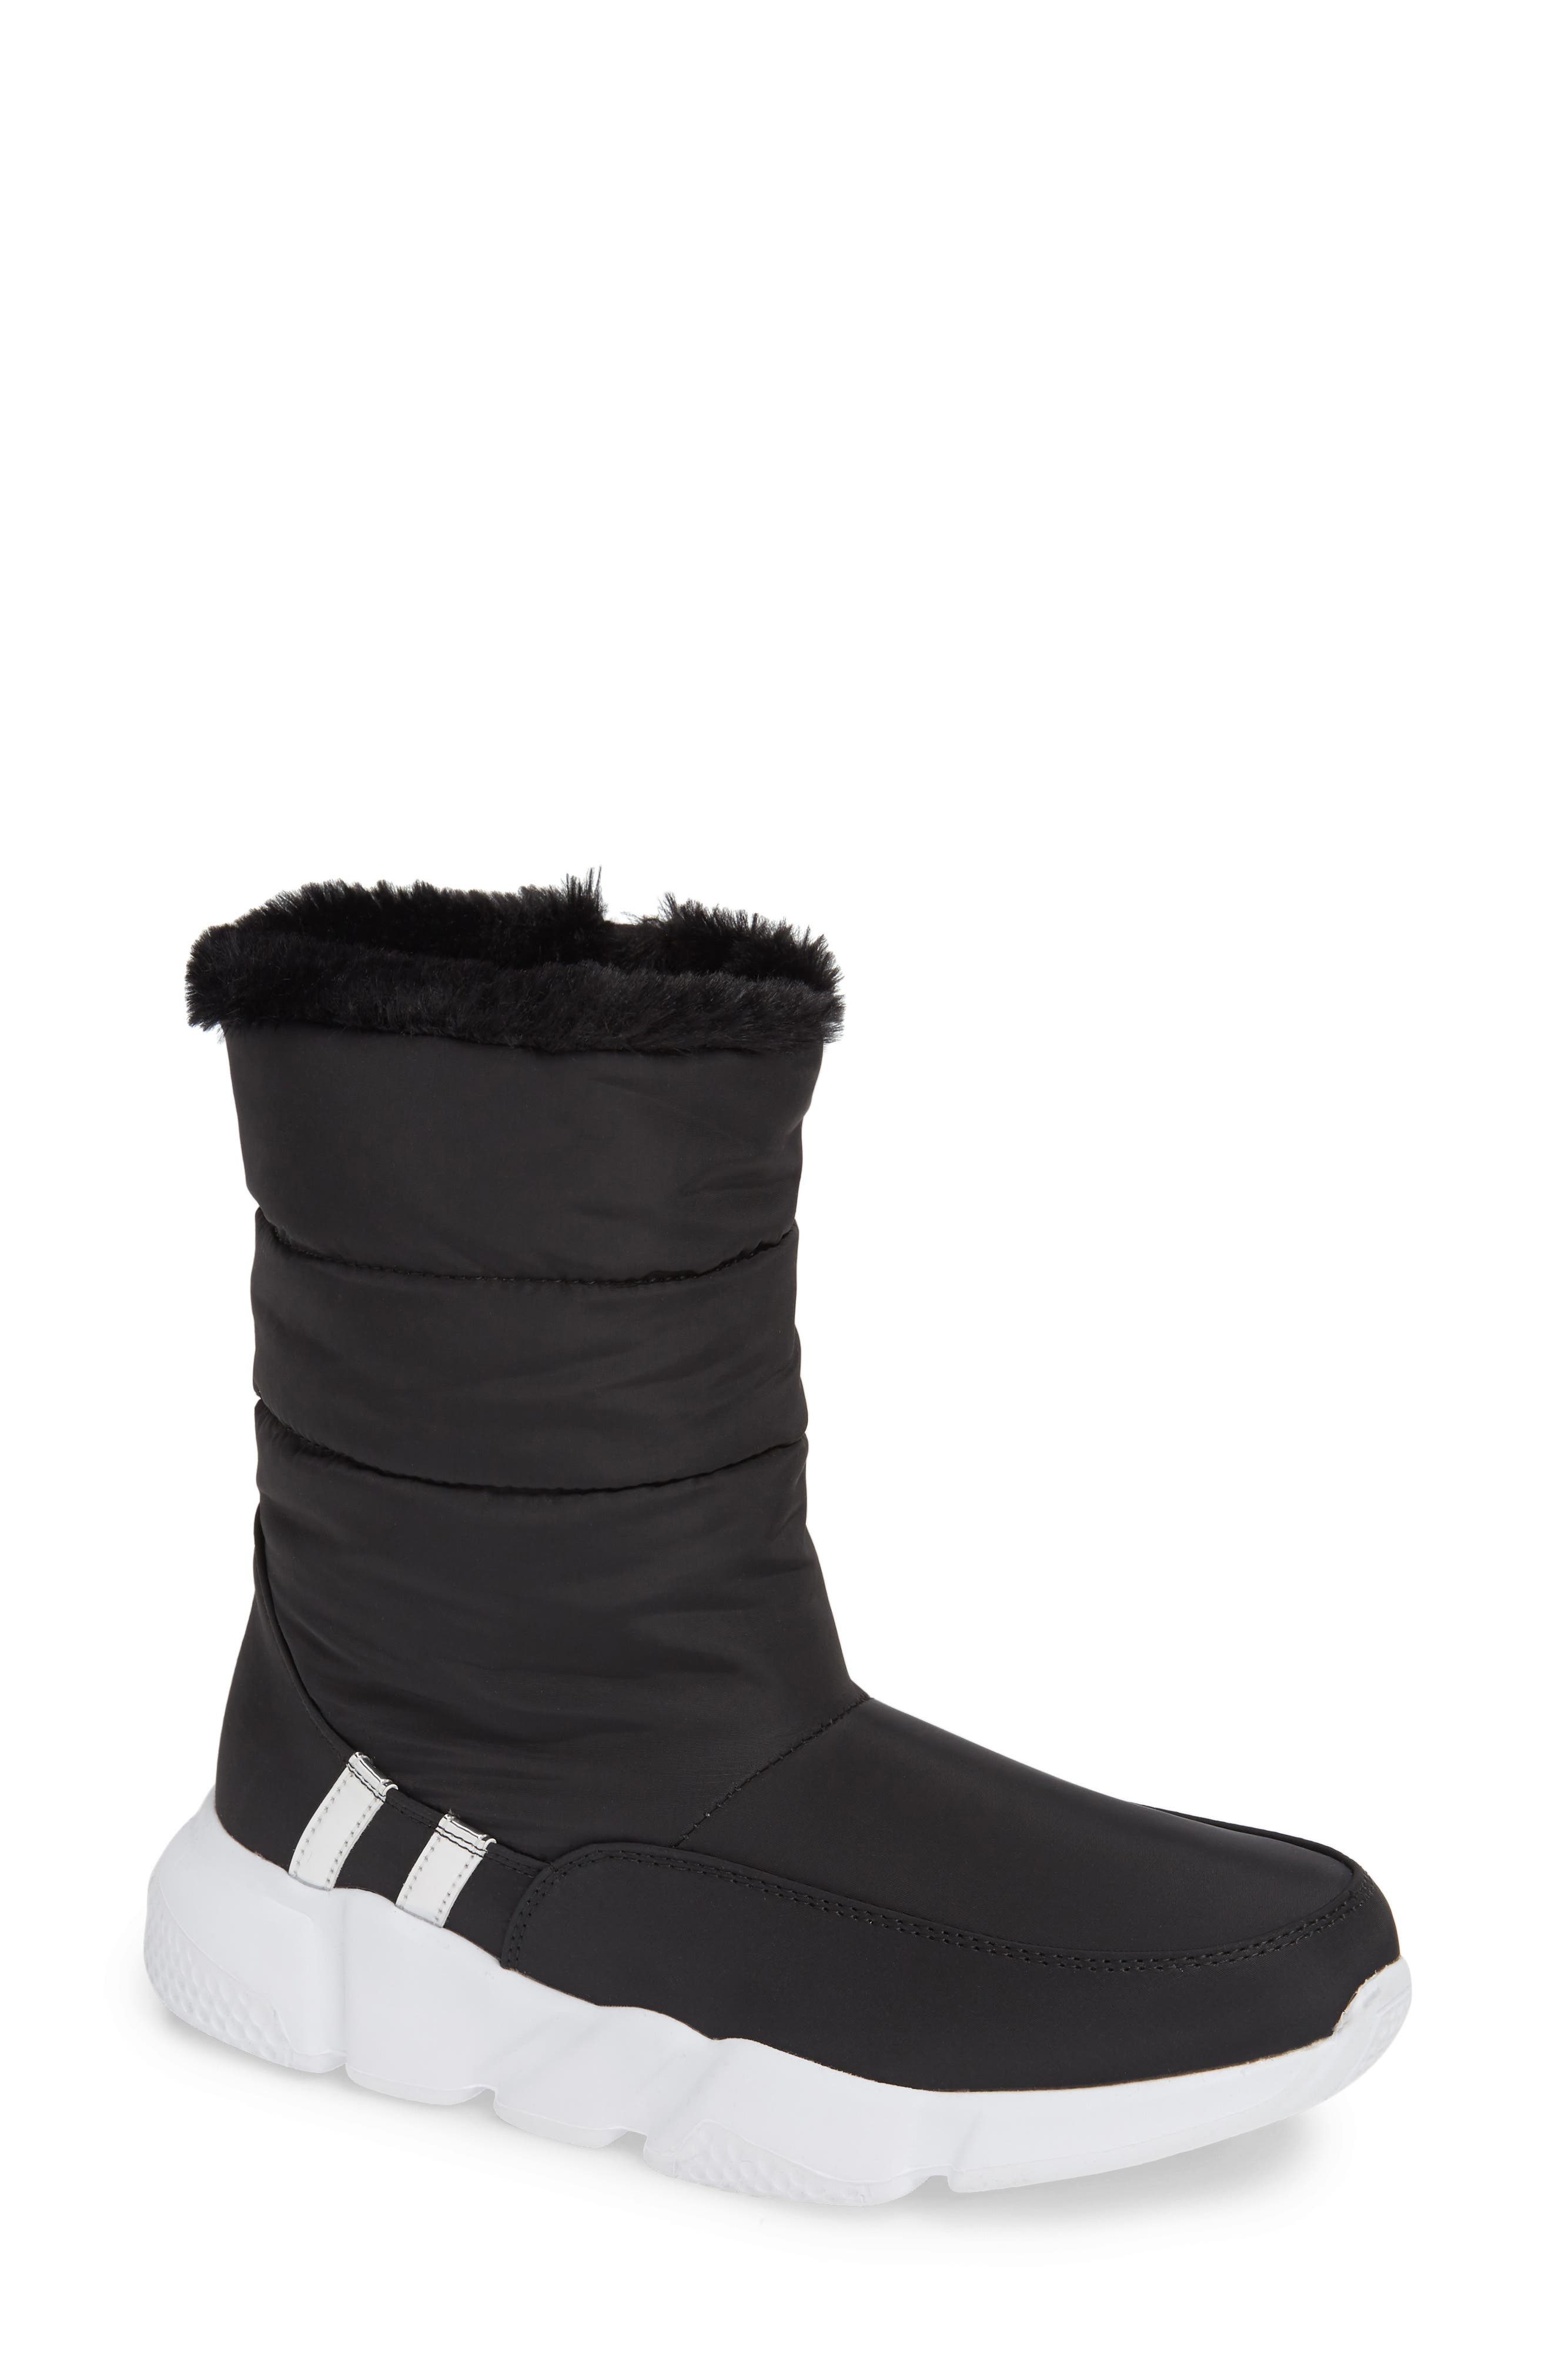 STEVE MADDEN,                             Snowday Faux Fur Lined Boot,                             Main thumbnail 1, color,                             BLACK